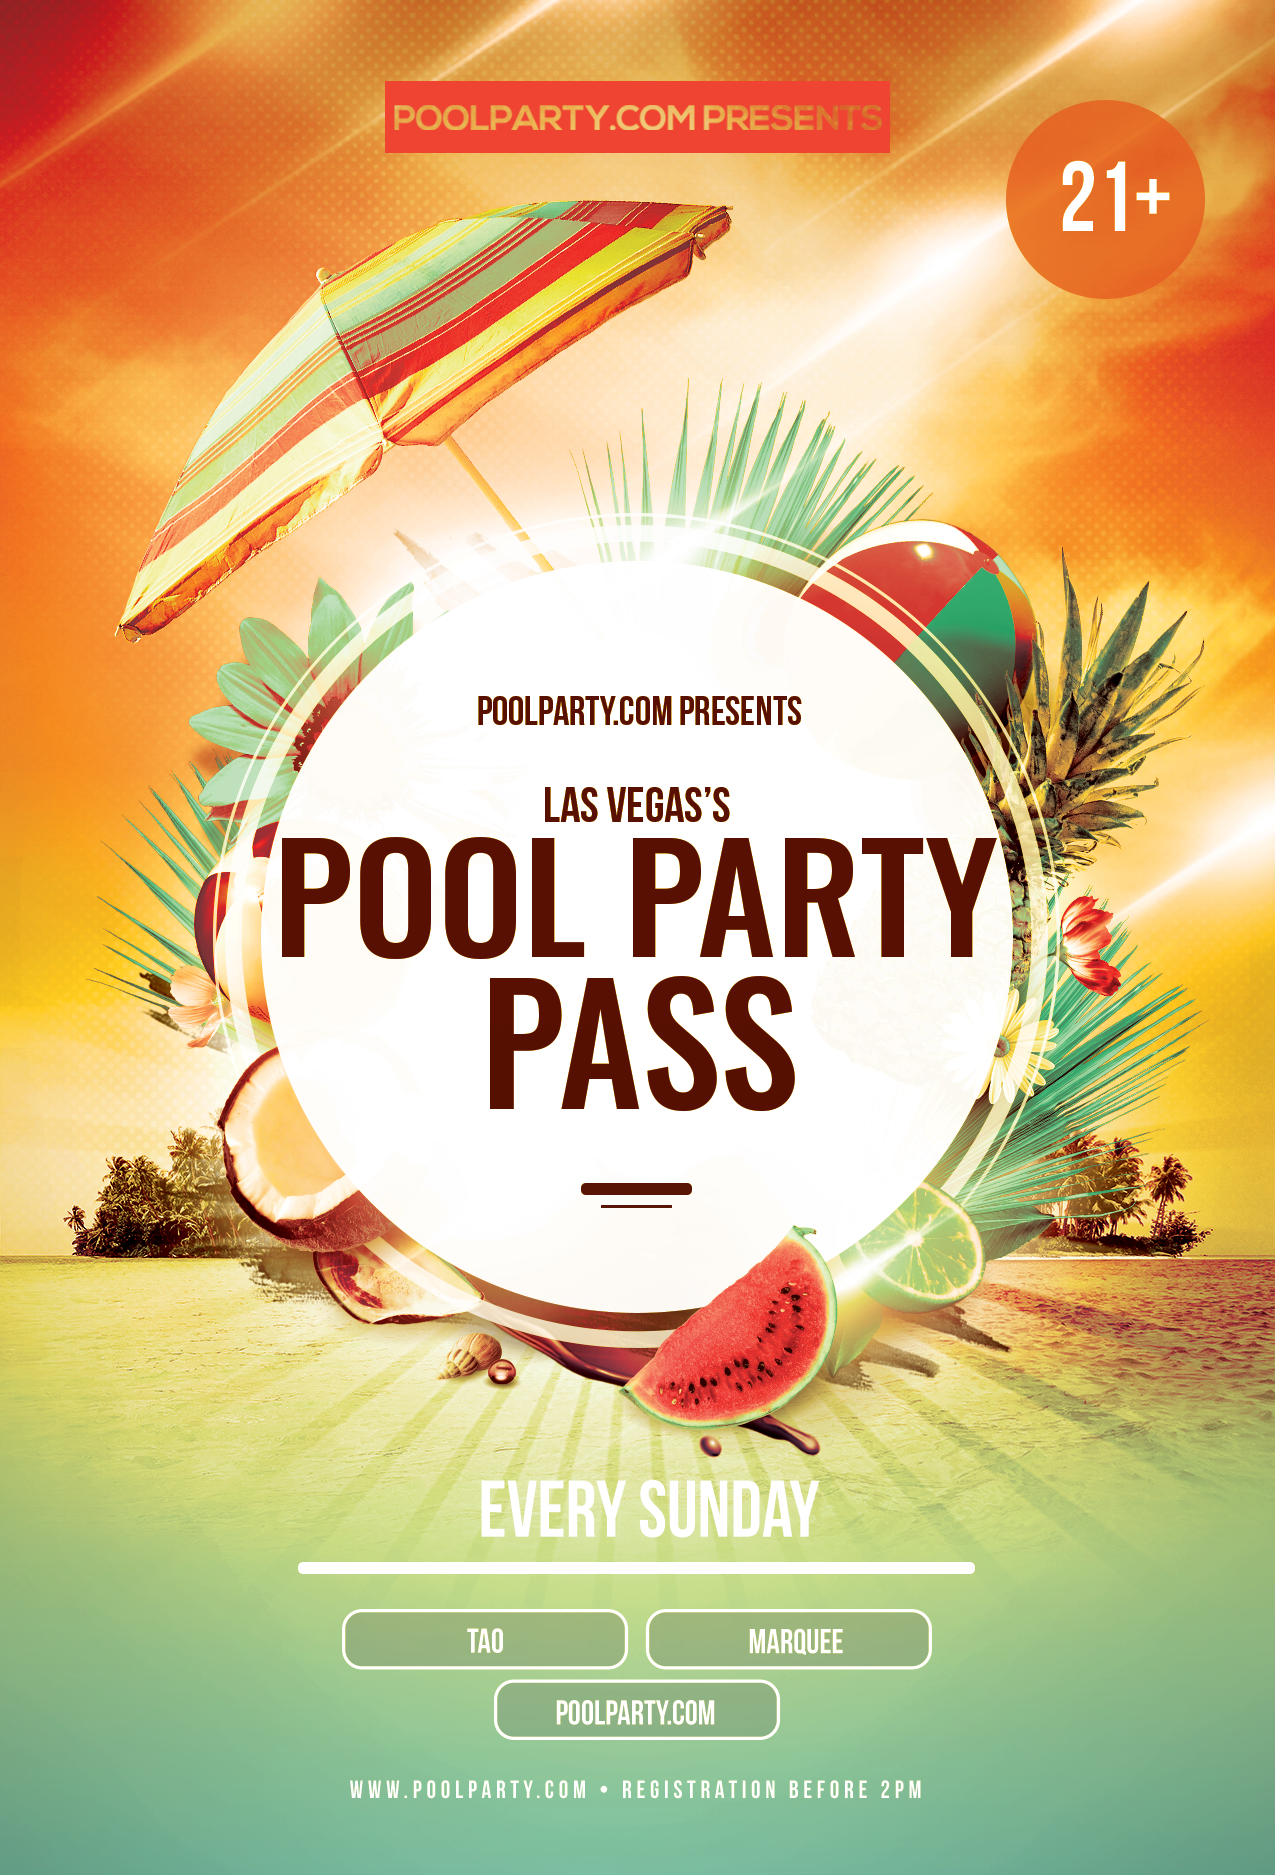 Sunday's Pool Party Pass (August 18th)*NOW INCLUDING FREE ADMISSION TO TAO NIGHTCLUB*